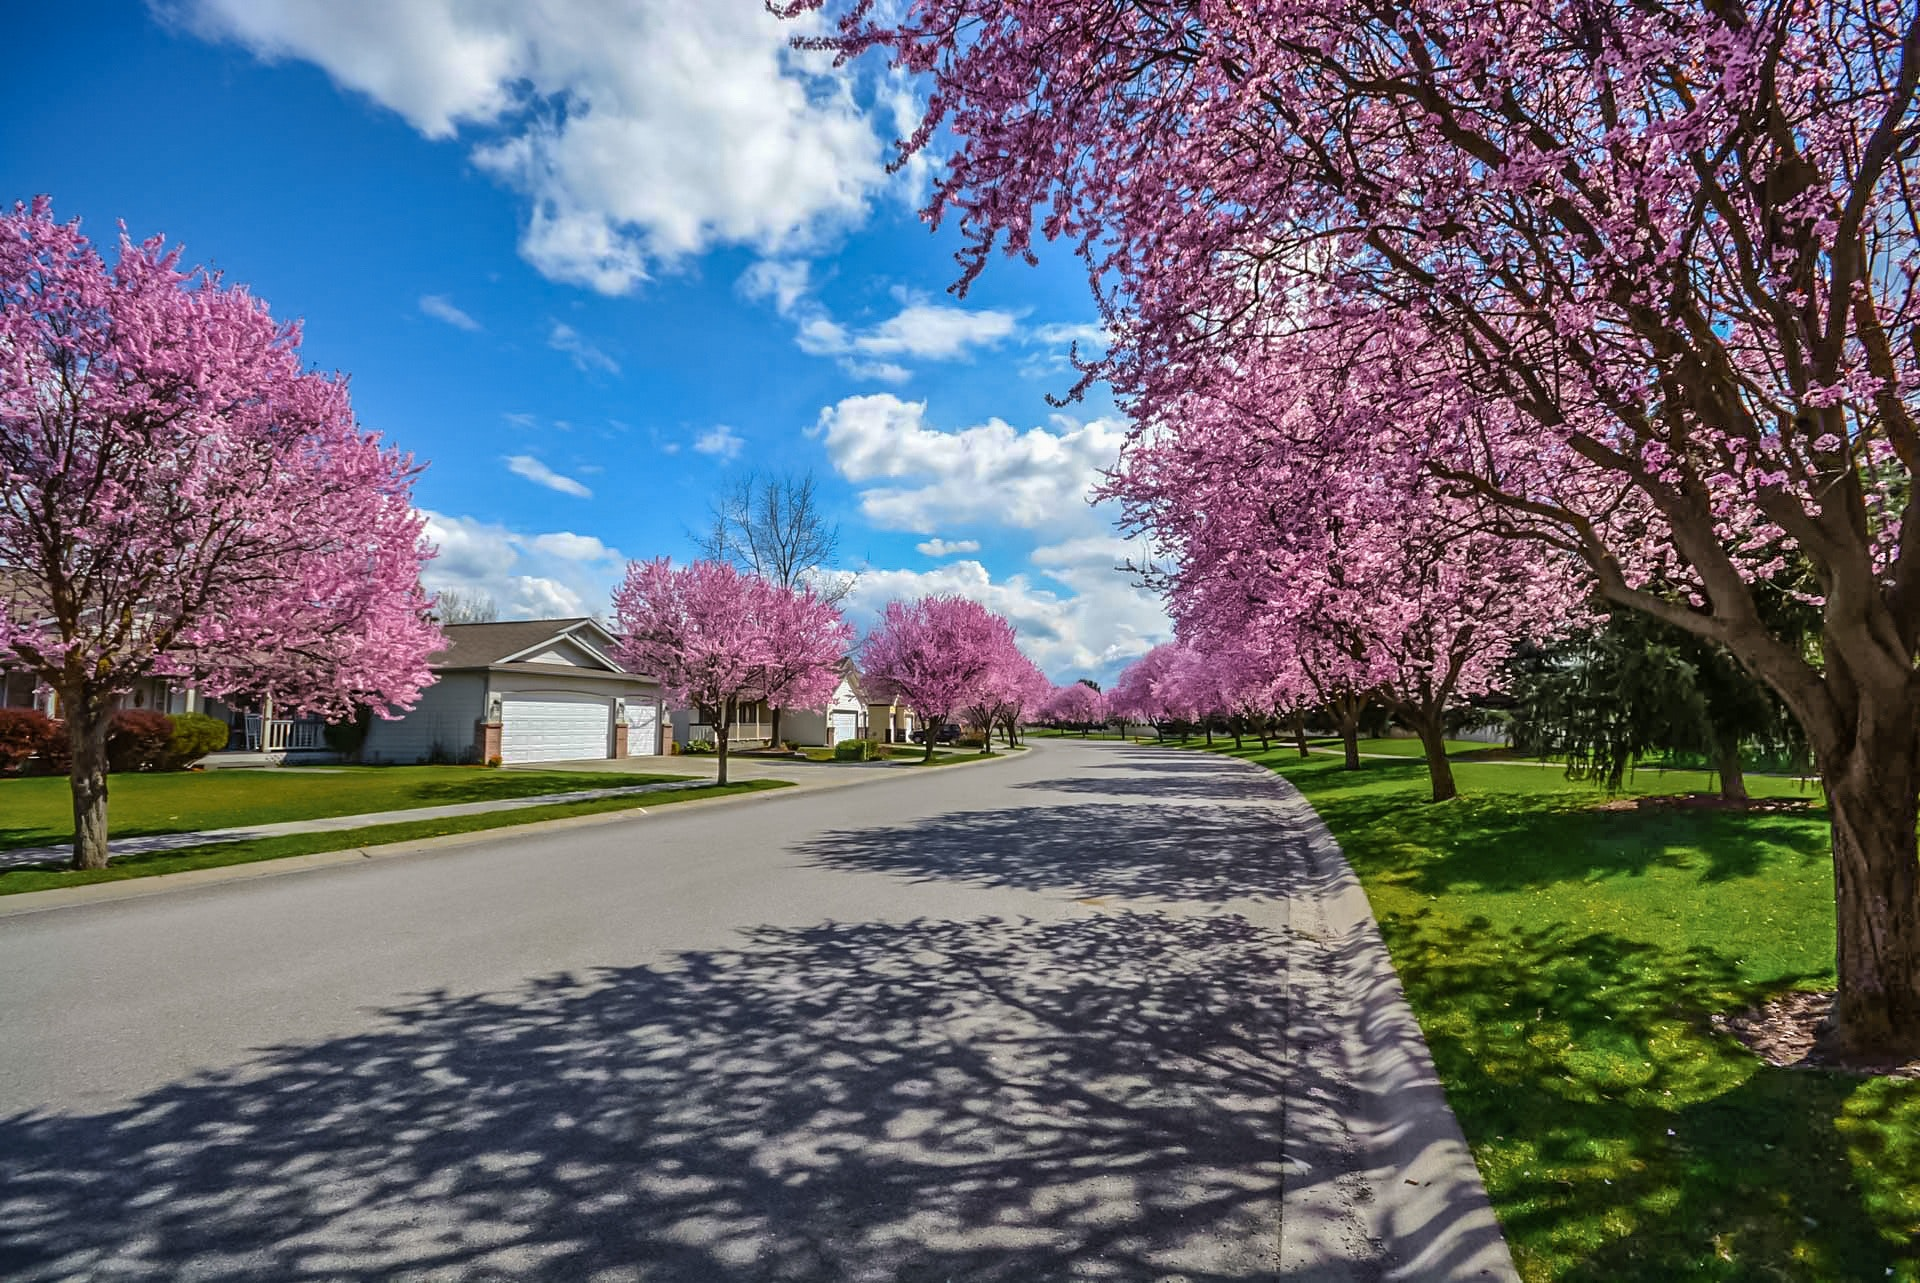 There are many benefits to adding some trees in your yard!